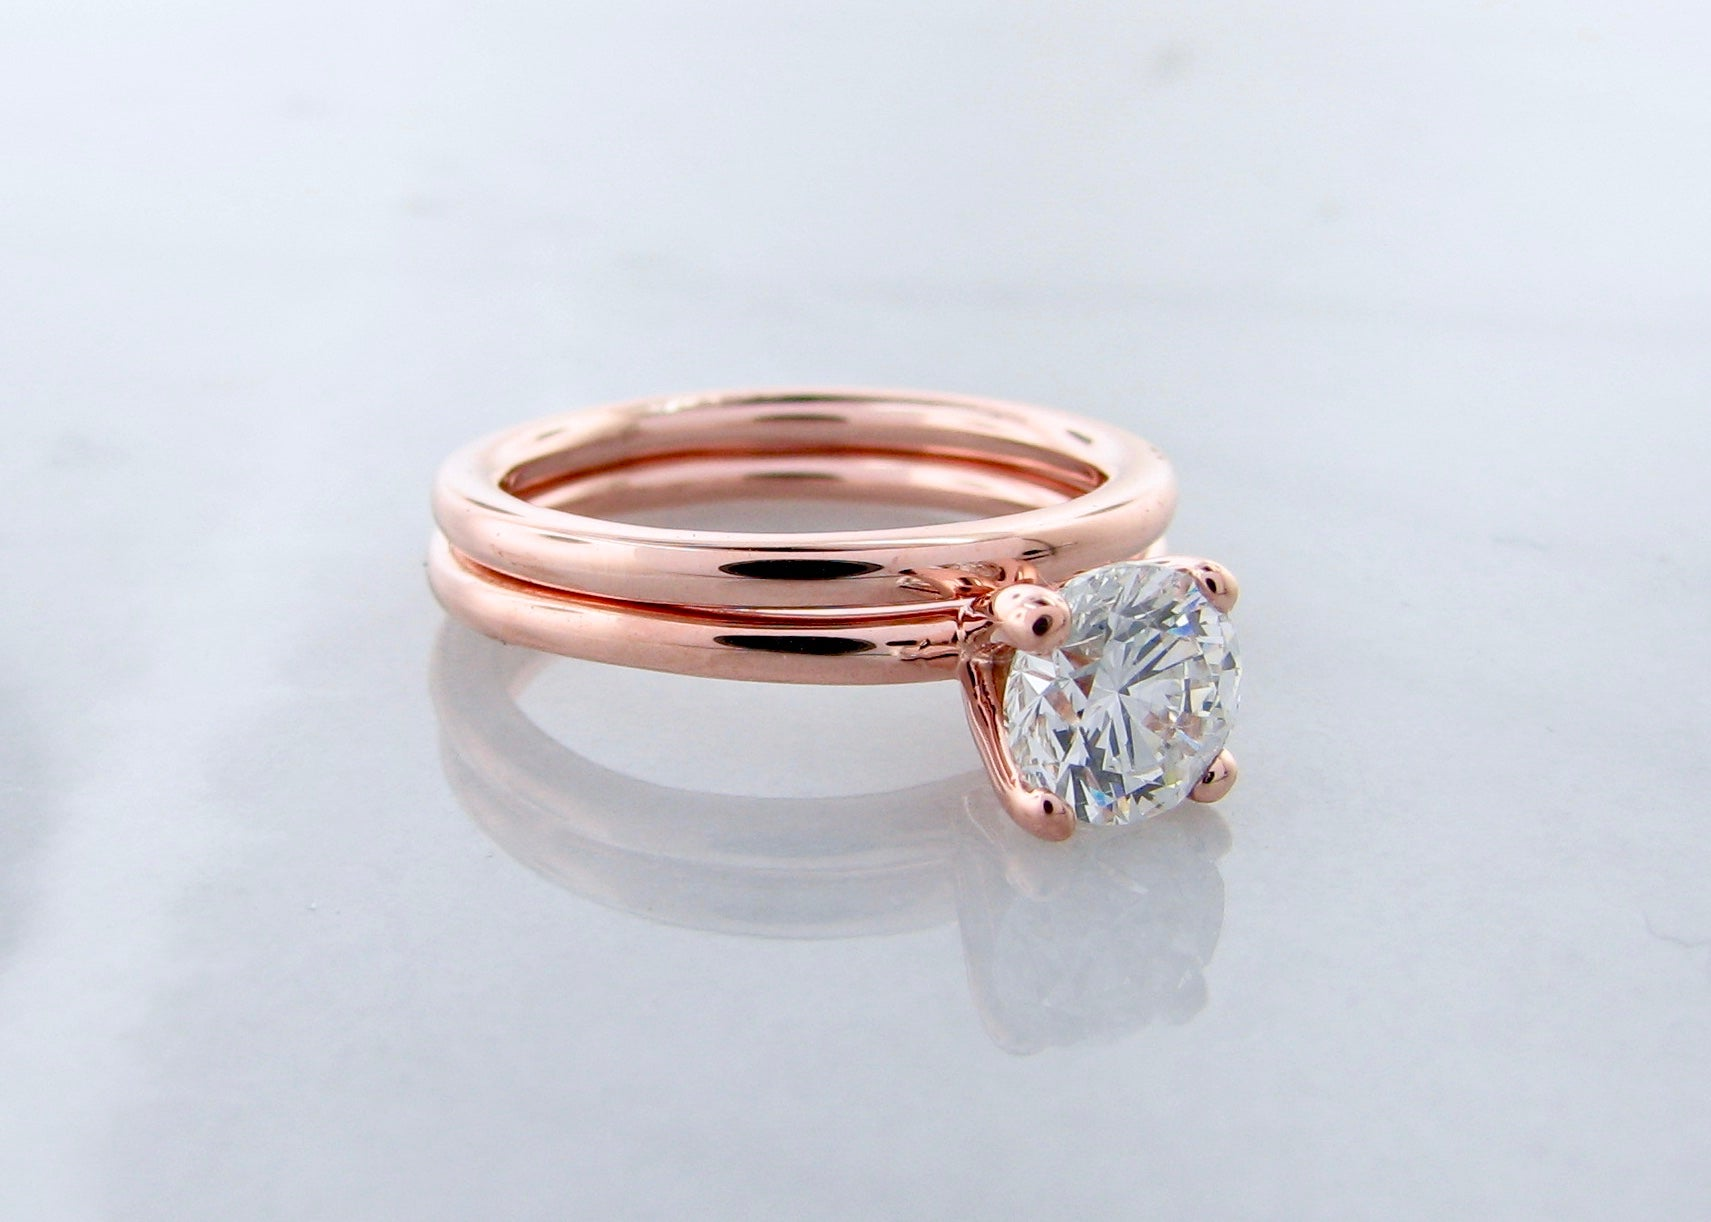 Brilliant Cut Diamond Rose Gold Engagement Ring Set Simplicity Wexford Jewelers